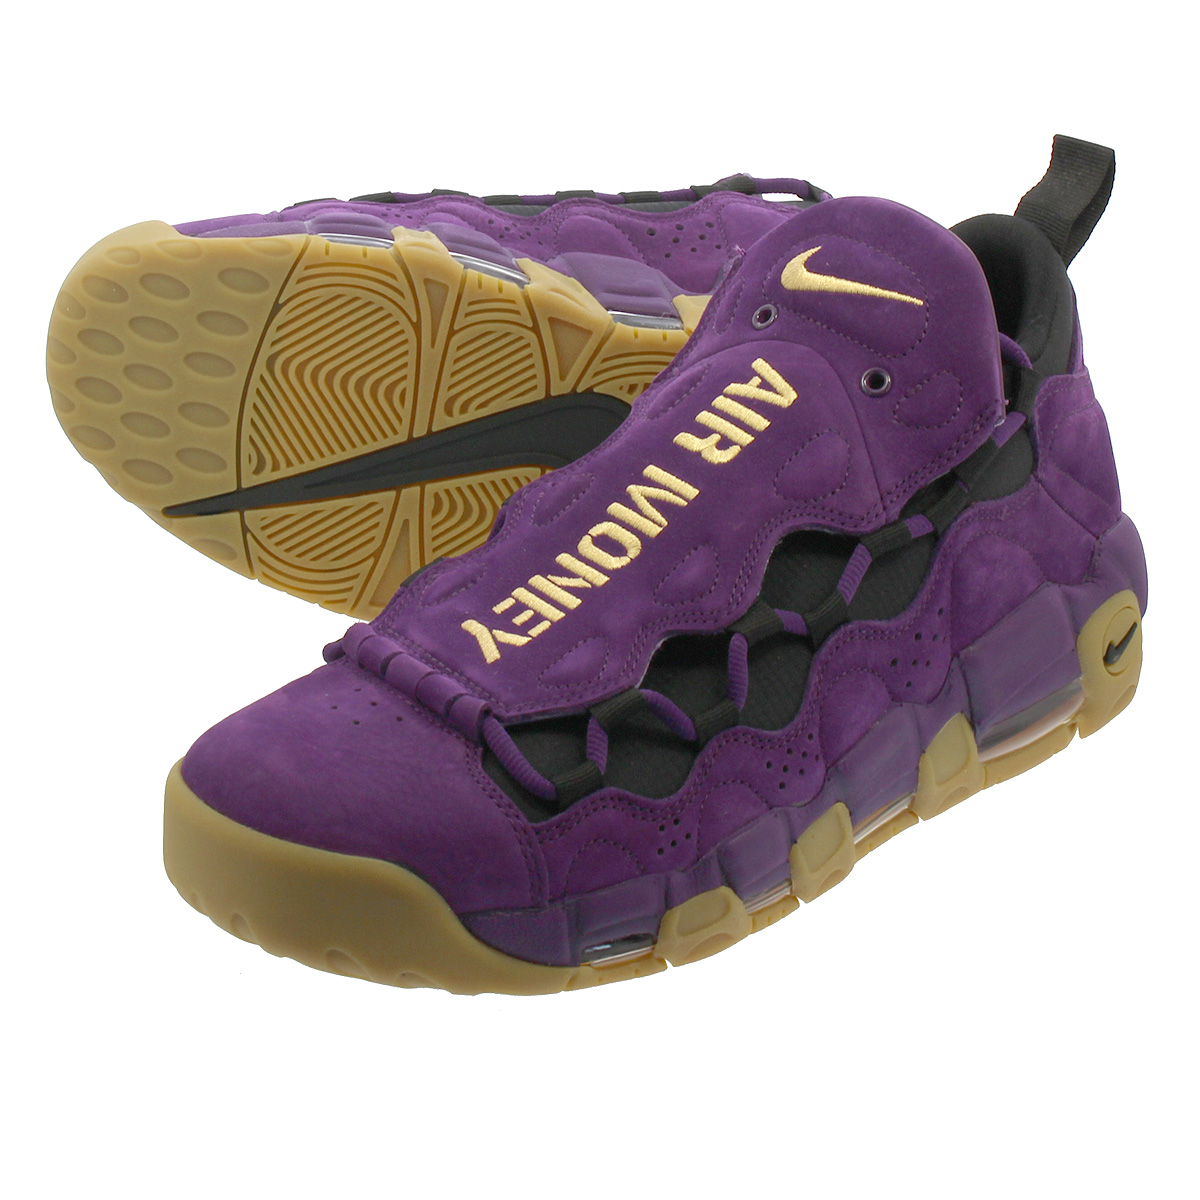 NIKE AIR MORE MONEY ナイキ エア モア マネー NIGHT PURPLE/METALLIC GOLD/BLACK ar5401-500